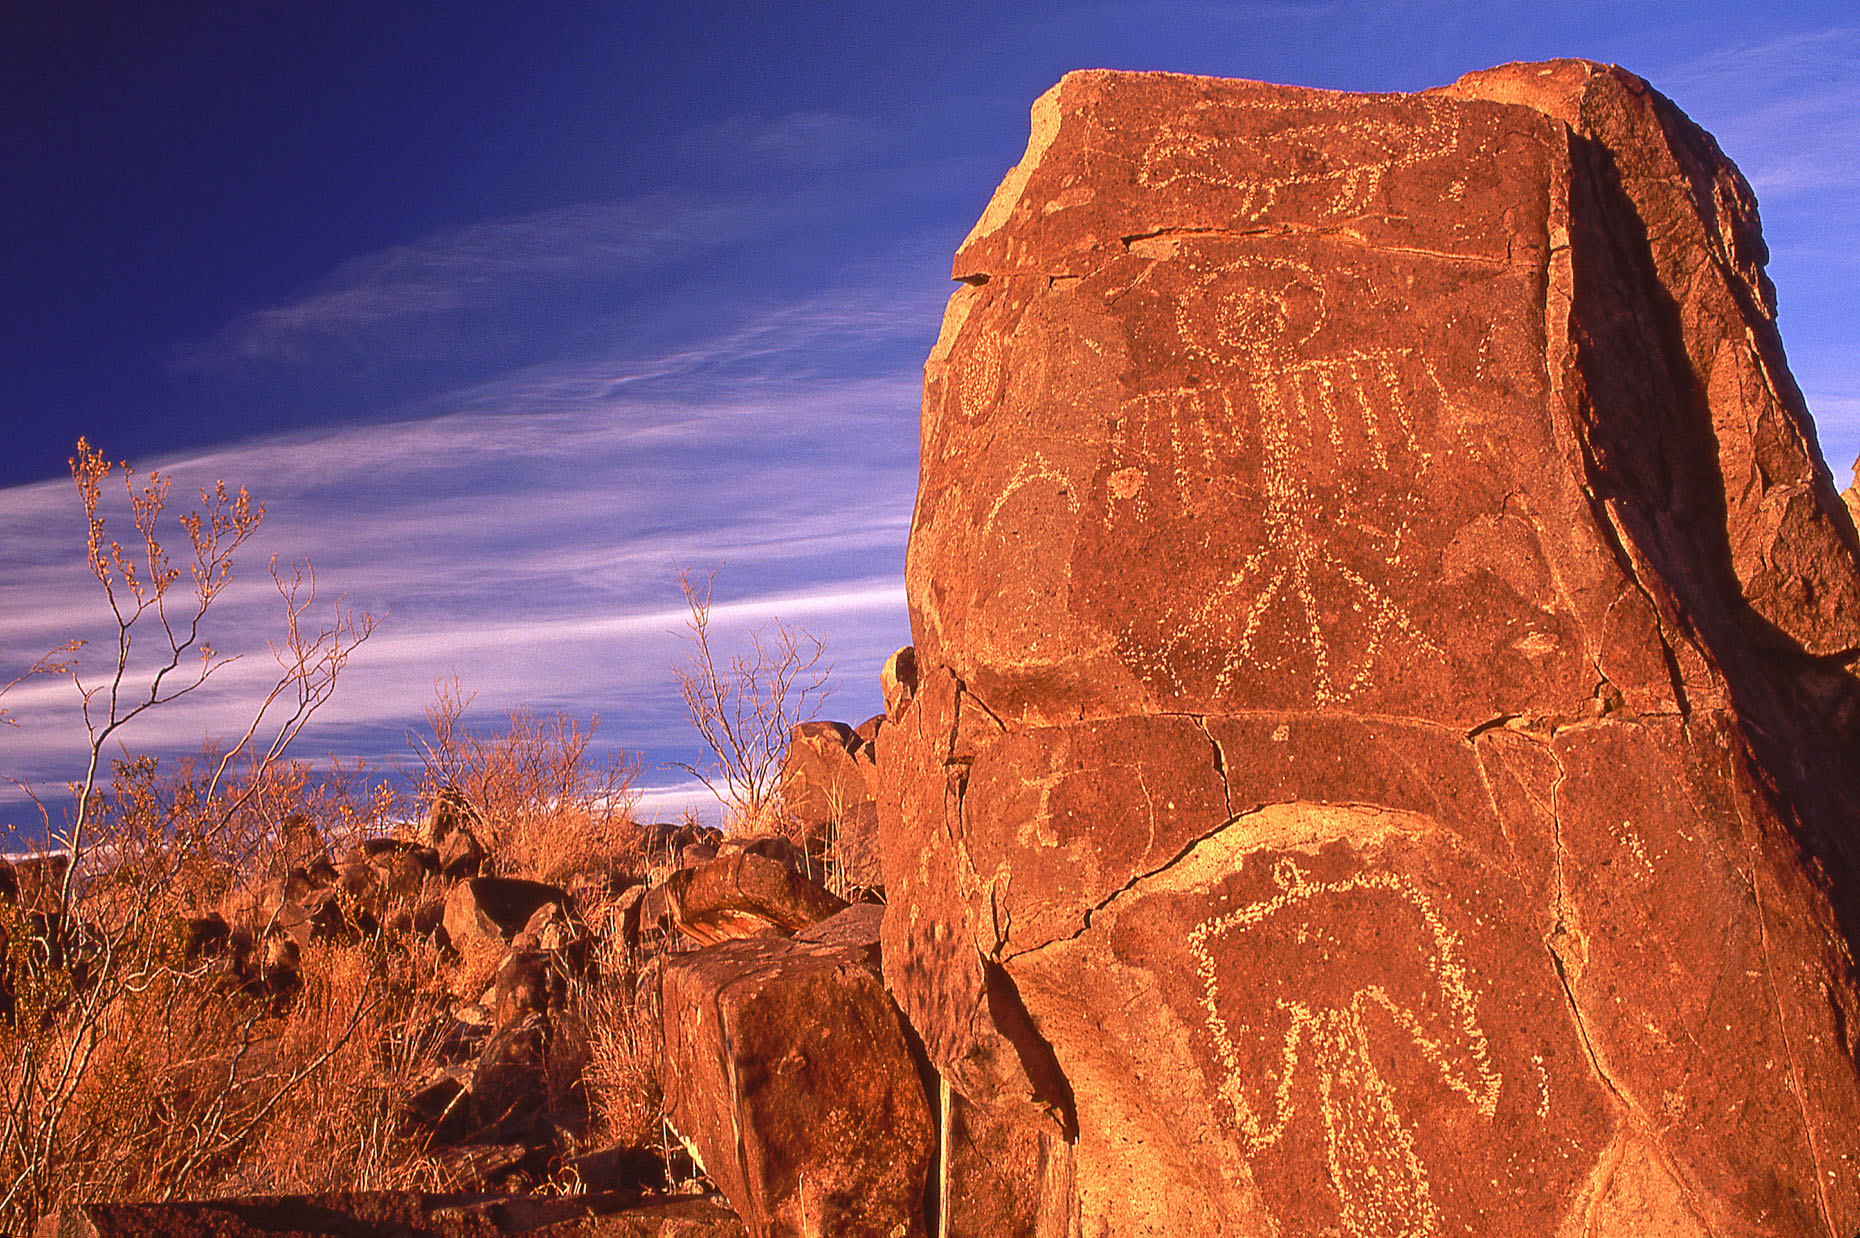 Thunderbird rock, John Annerino, Mescalero Apache, Billy the Kid, Three Rivers Petroglyph Site NM, Sierra Blanca, Bureau of Land Management, Rio Grande, Jornada Mogollon